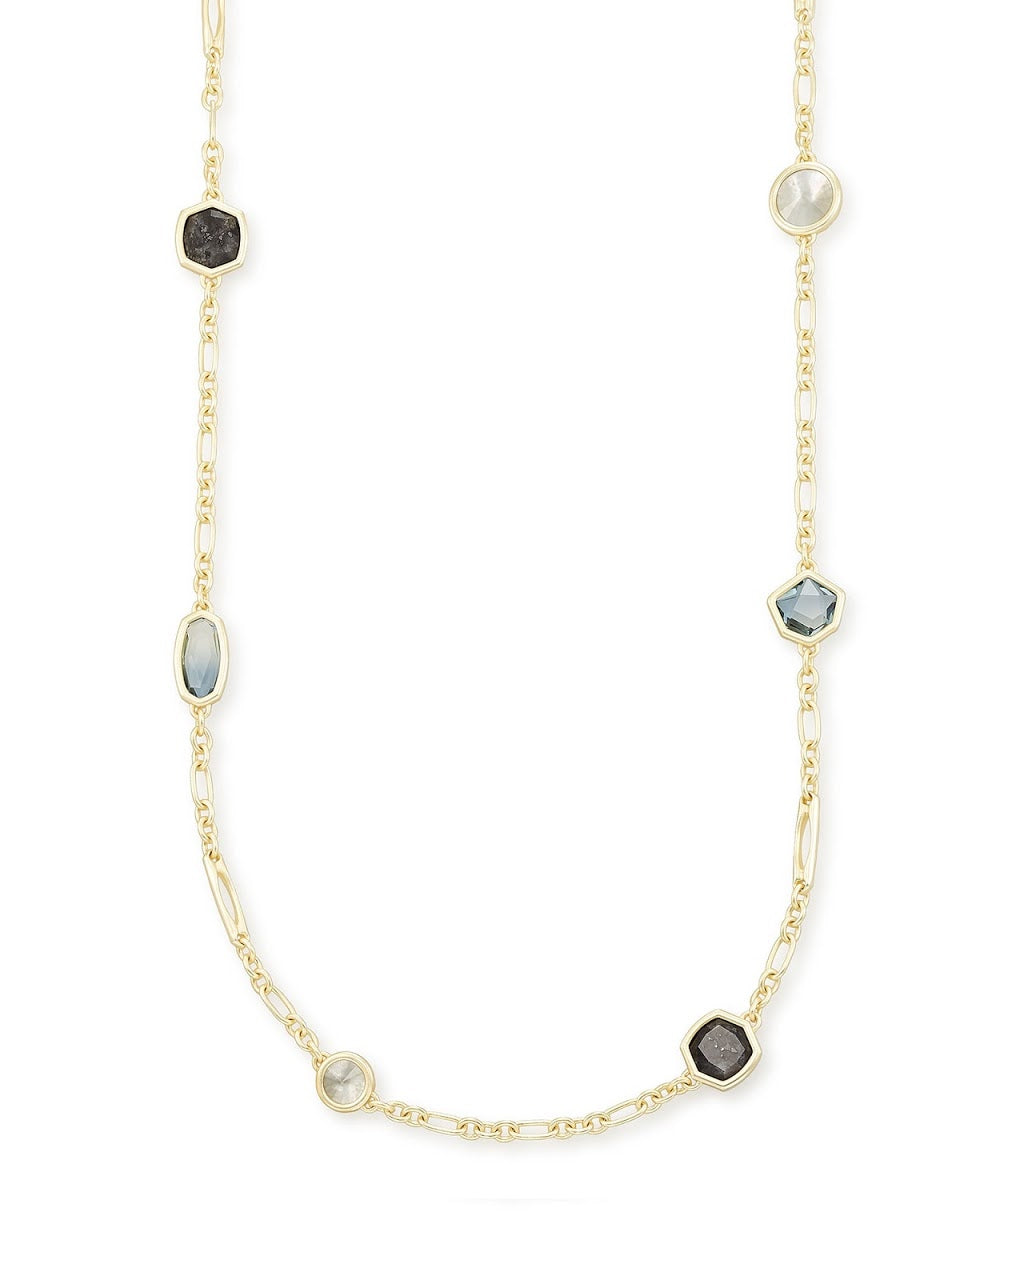 Natalia Gold Long Necklace-Steel Gray Mix